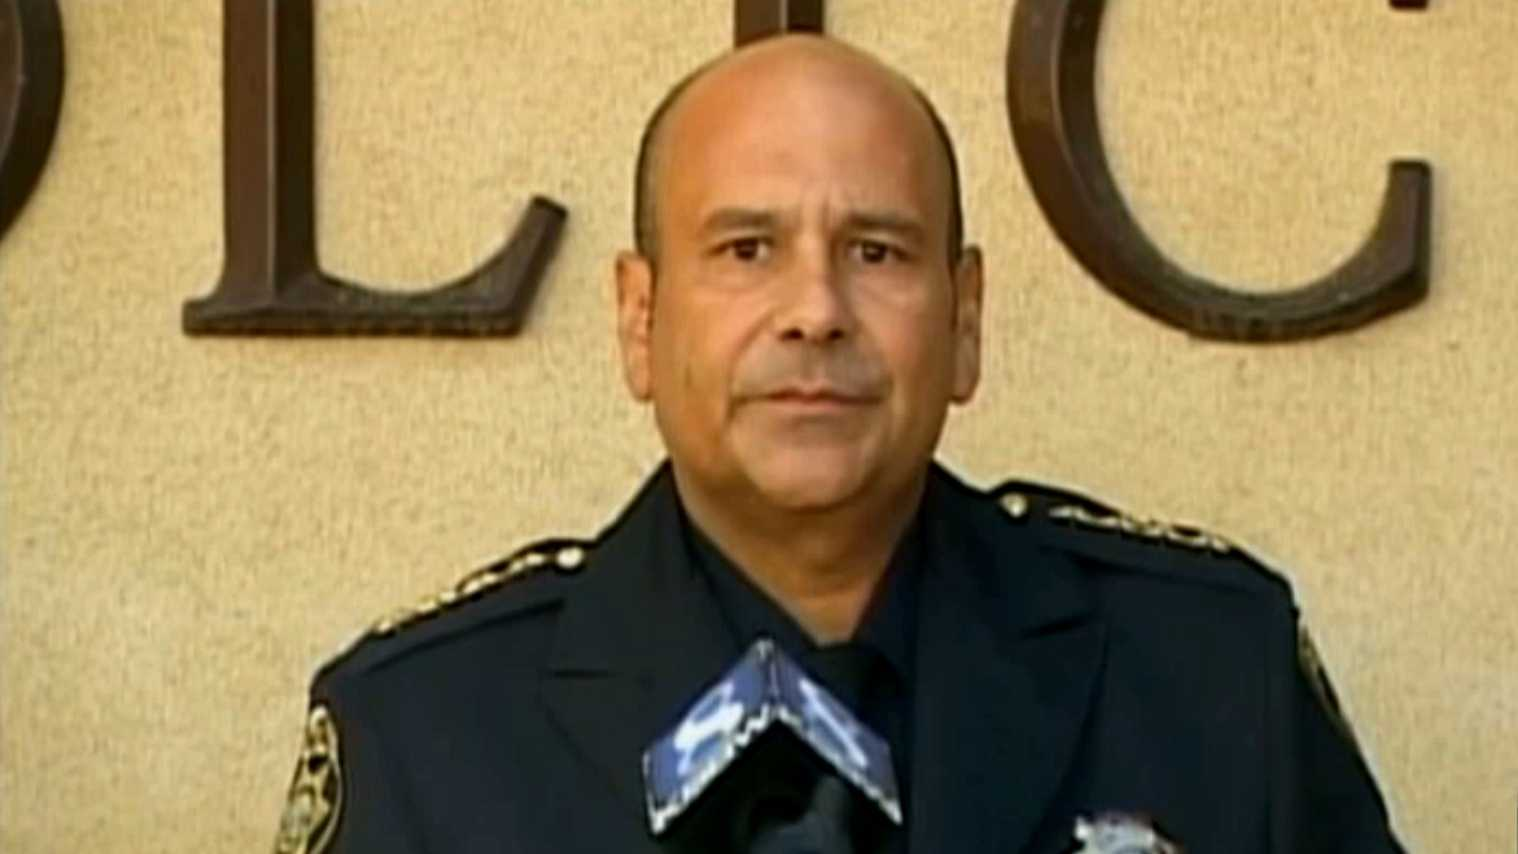 Nick Baldiviez was King City's police chief for nine years. He retired in September 2013.